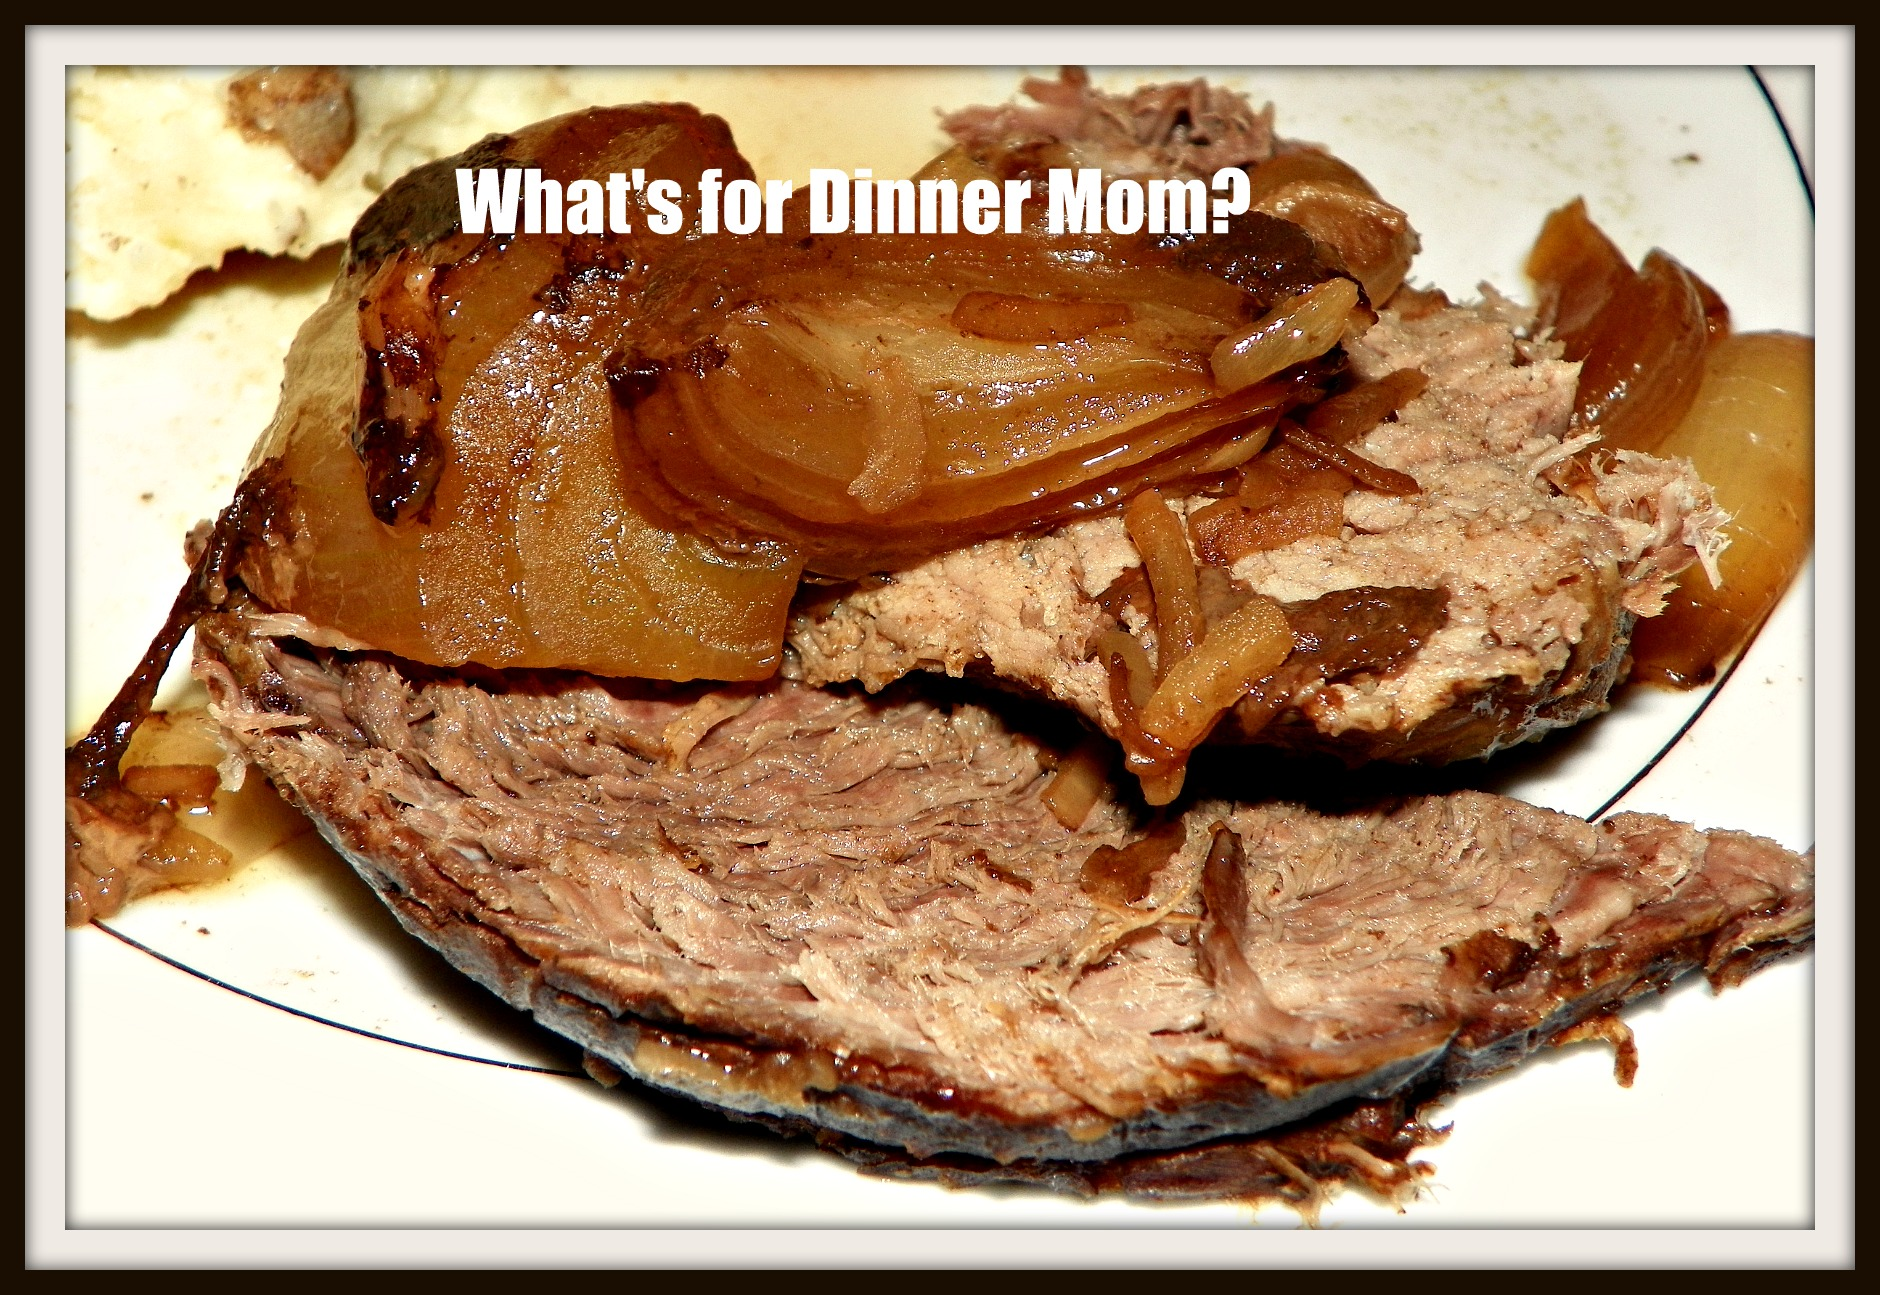 Balsamic Onion Slow Cooker Roast – What's for Dinner Moms?